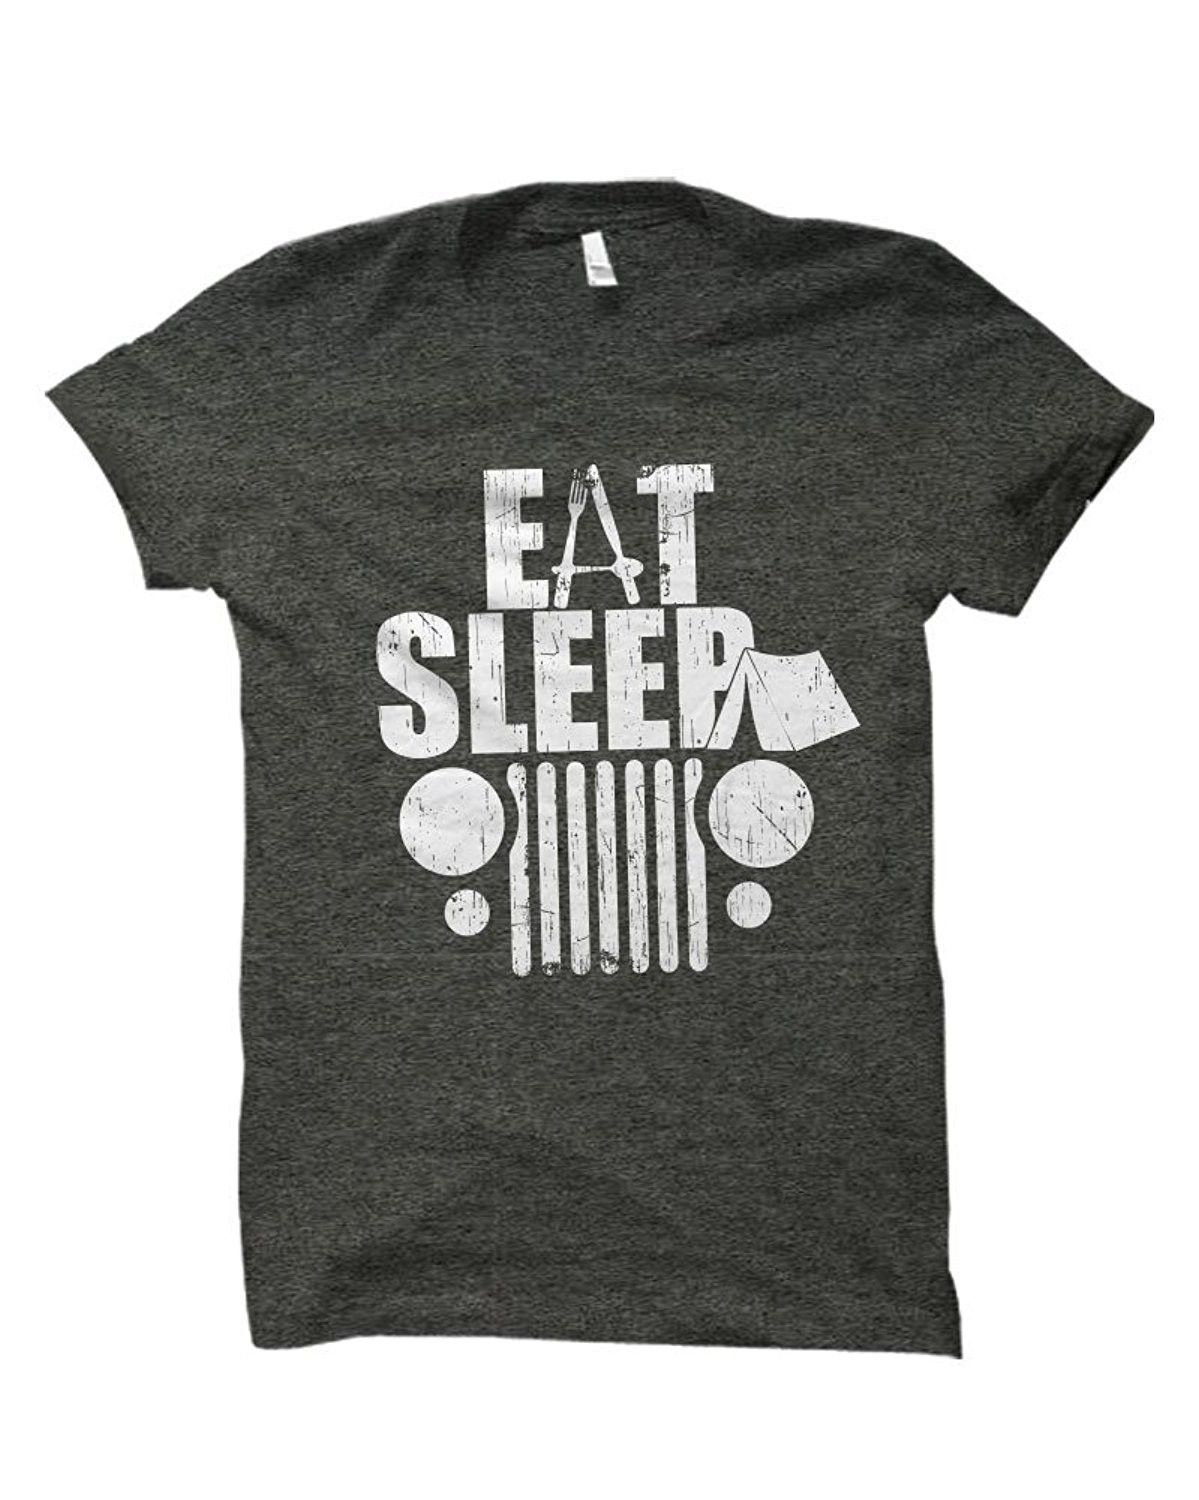 577afe11bb Men's Clothing, T-Shirts & Tanks, T-Shirts, Eat Sleep 4x4 Off Road Life  Adult T-Shirt Distressed Vintage - Dark Heather Grey - CA12HXDYXXX #TShirts  #Tanks ...